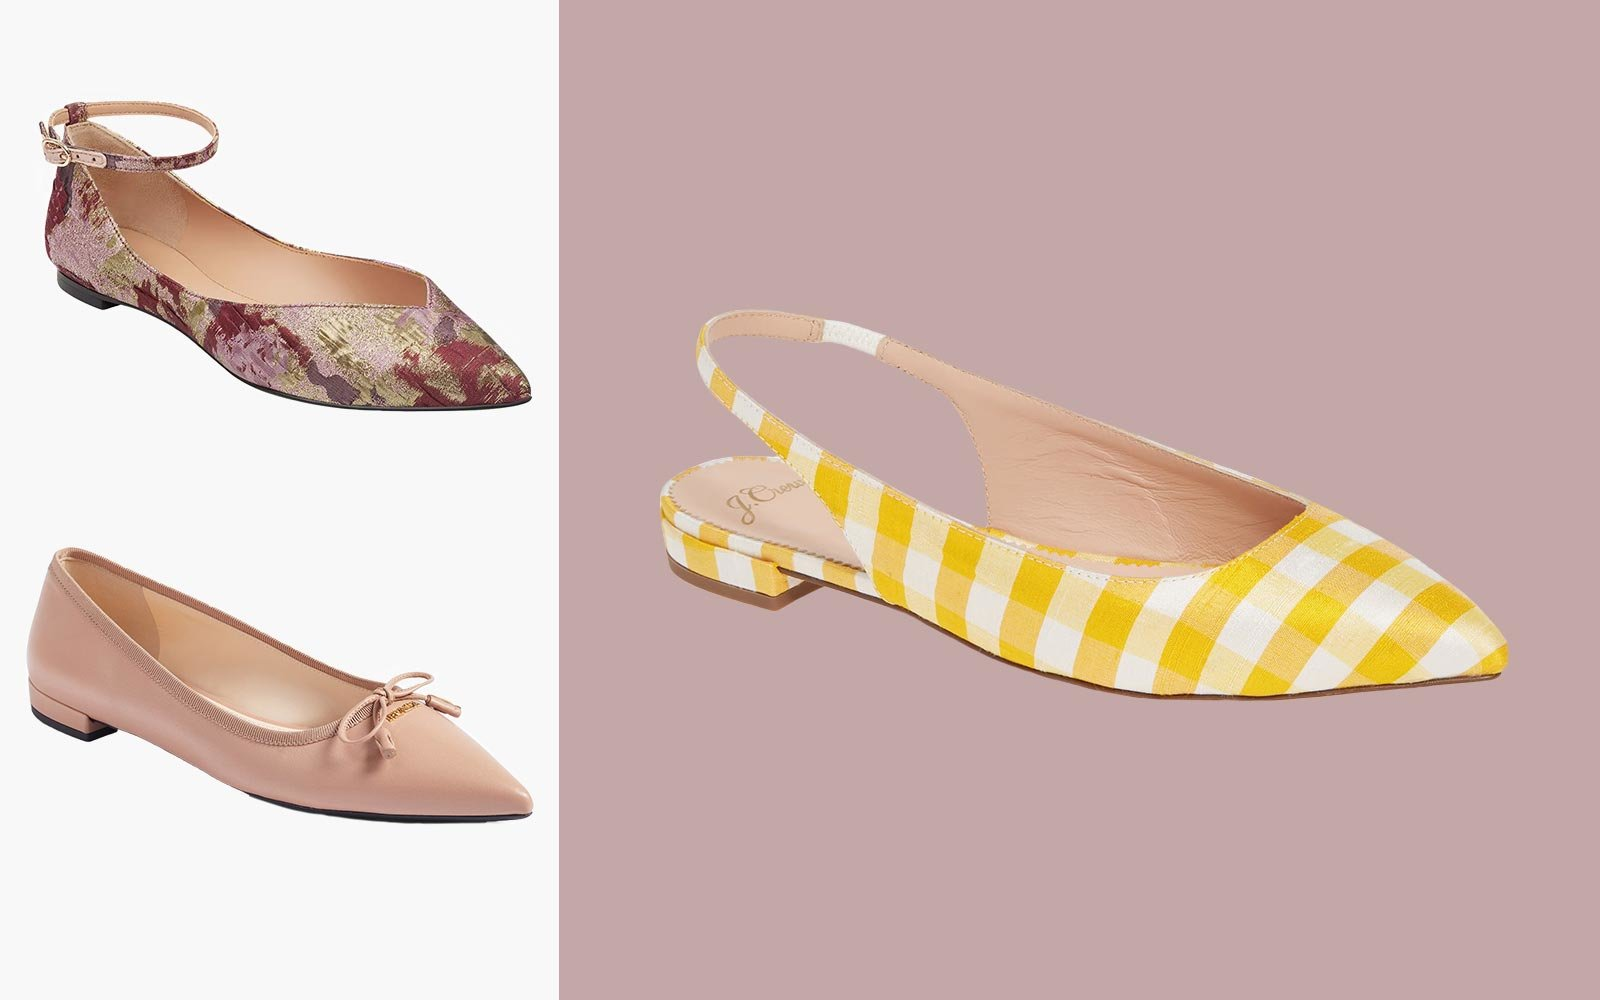 13 Dressy Flats That Are Much More Comfortable Than Heels